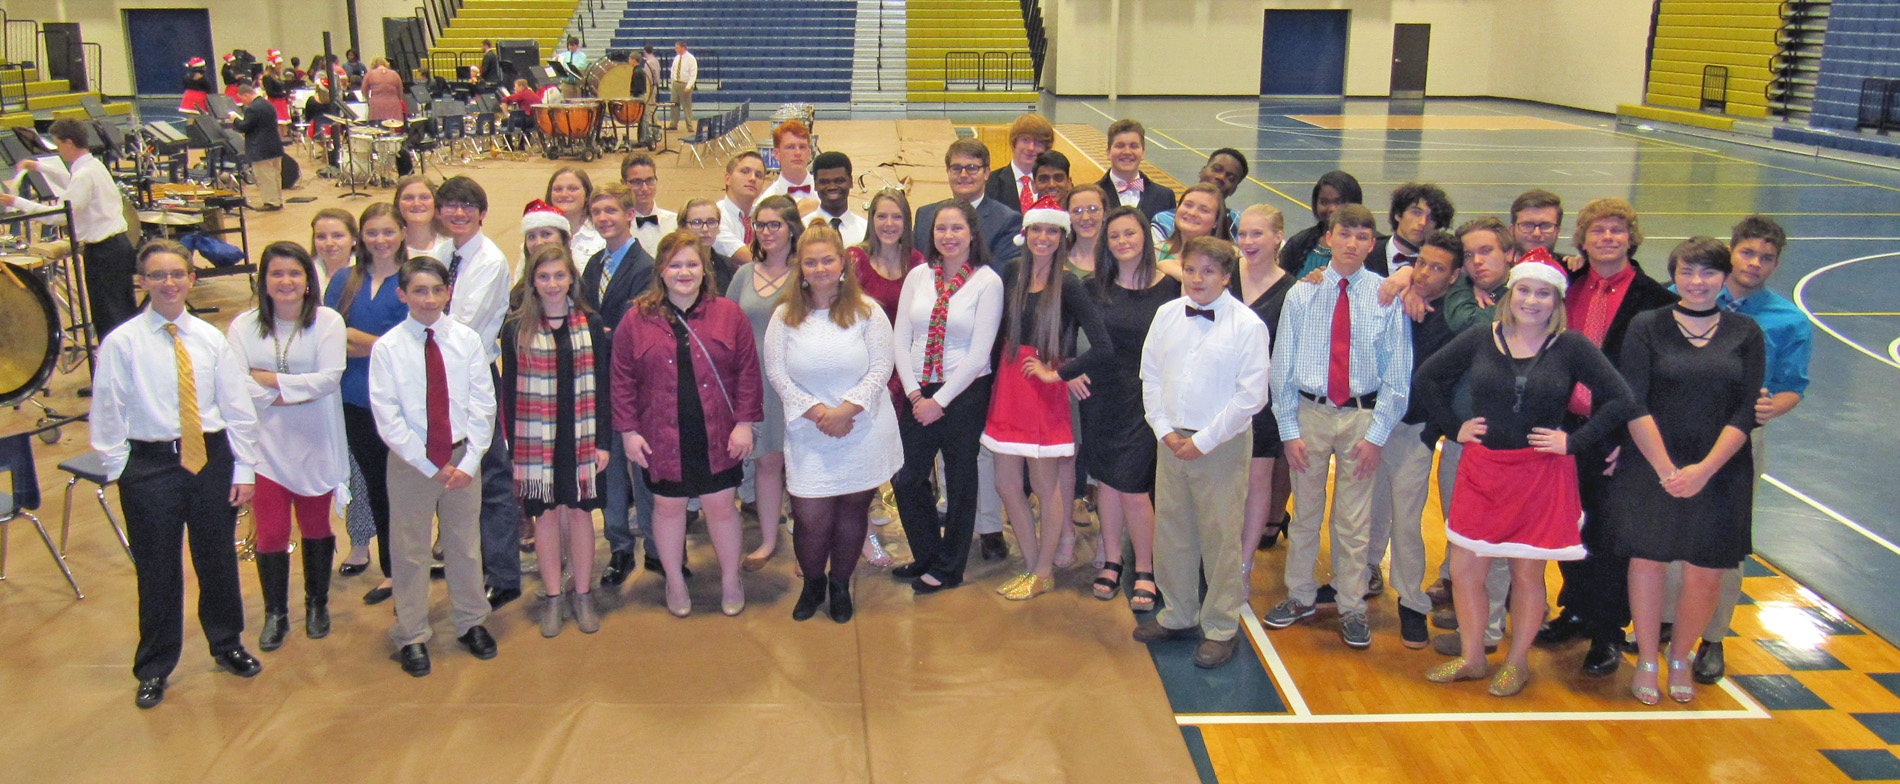 Thomas County Central High School has 47 youth musicians who earned seats on the GEMA District 2 Honor Band. Pictured are most of these honorees.